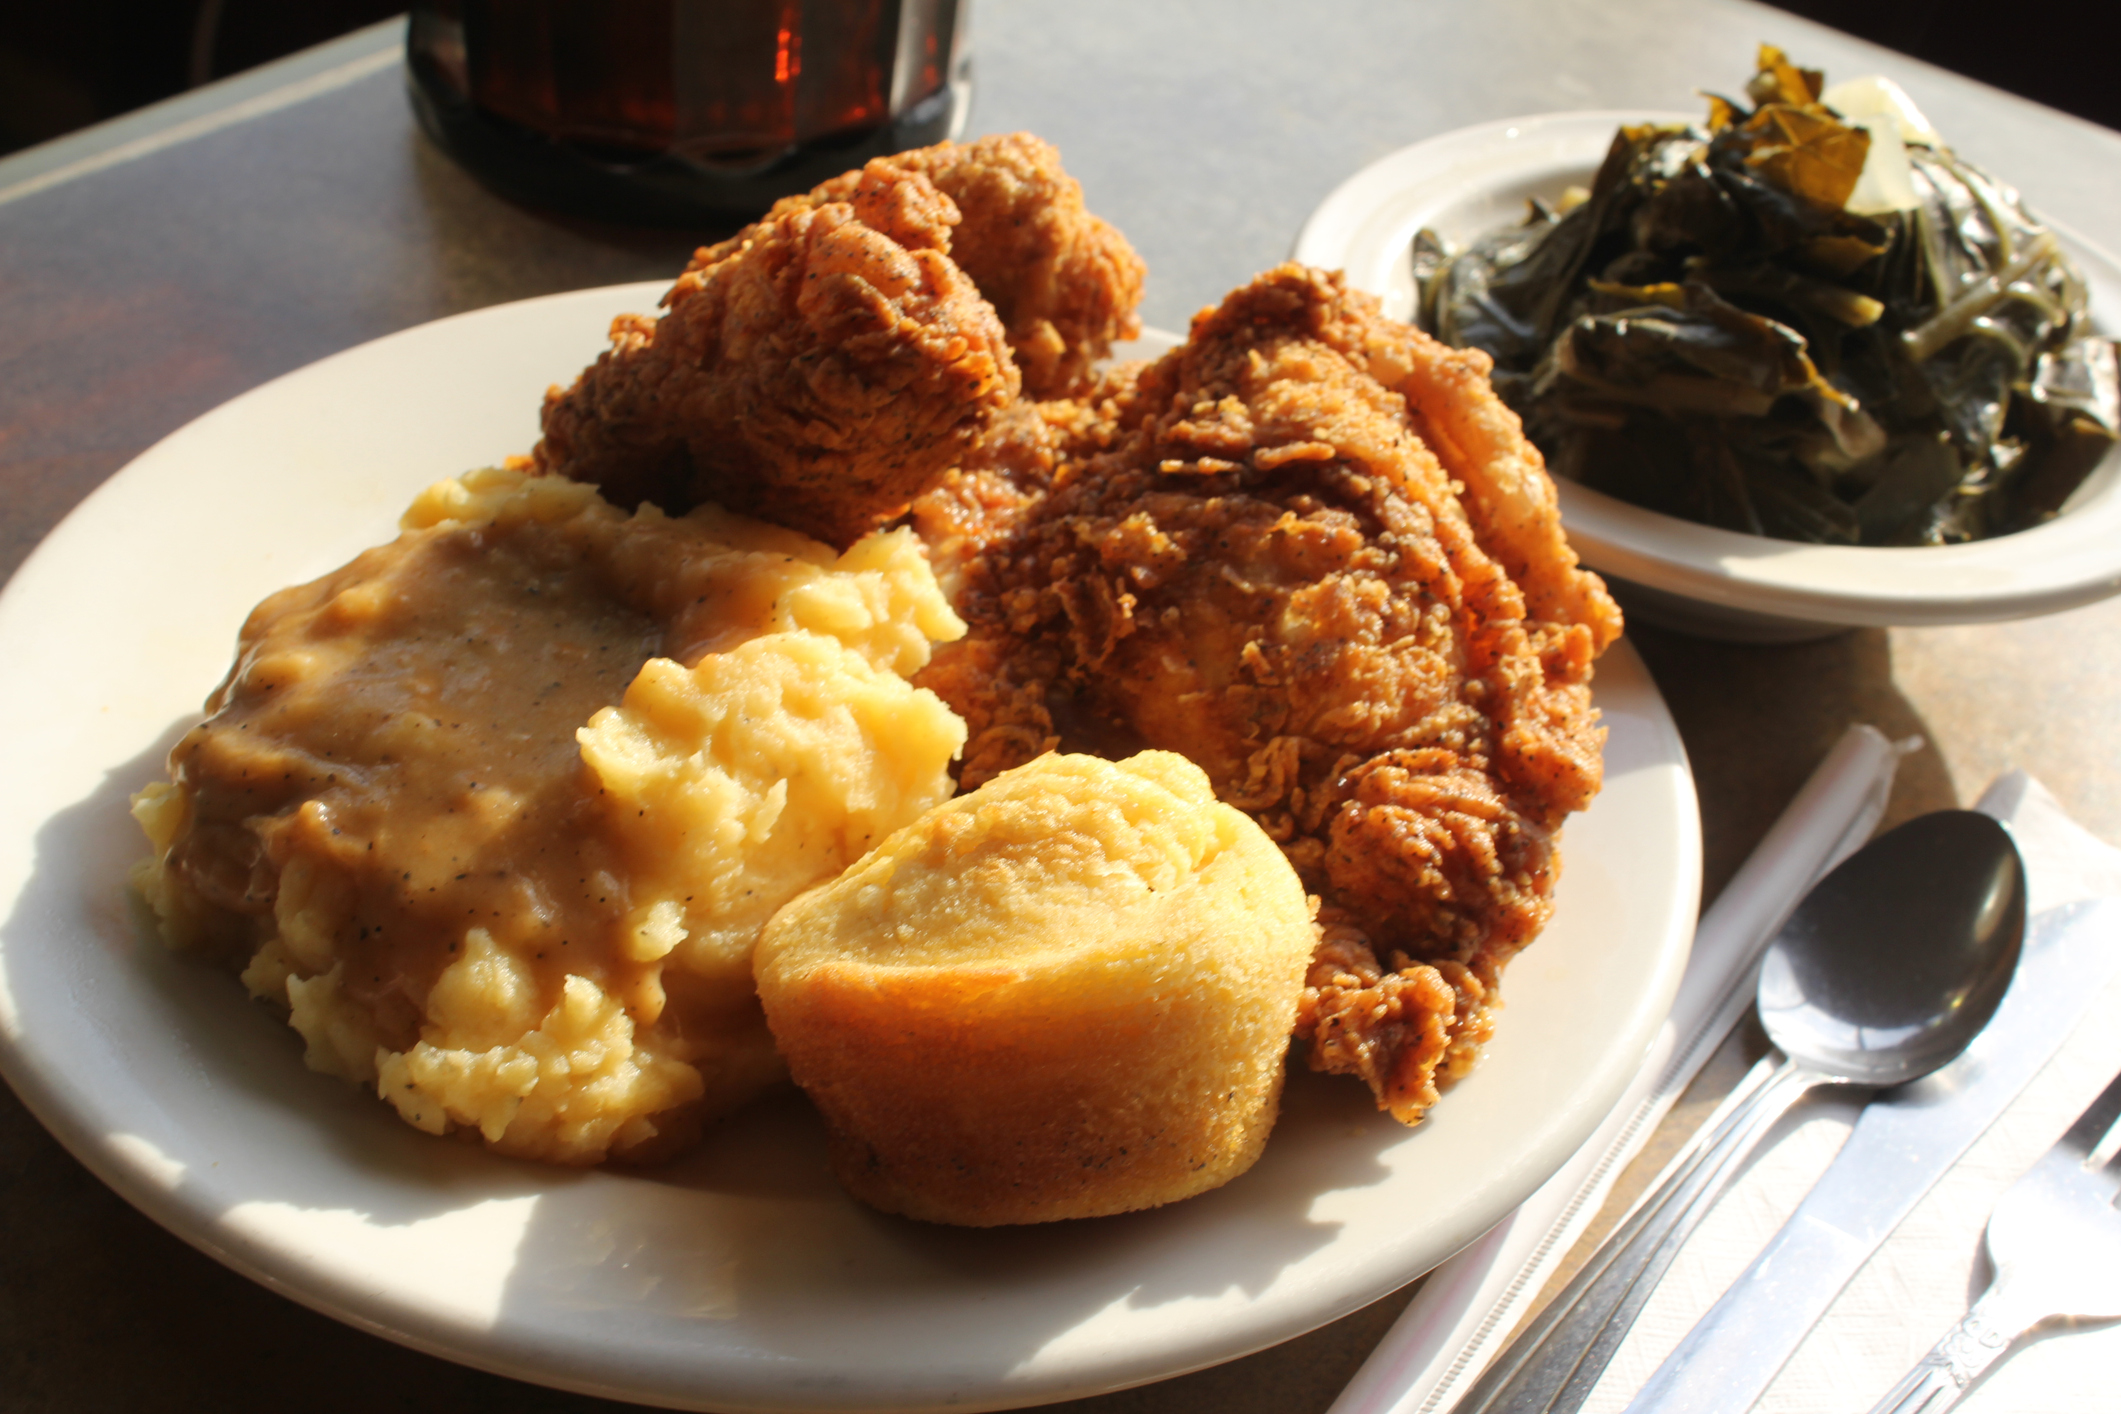 southern style diet contributes to stroke